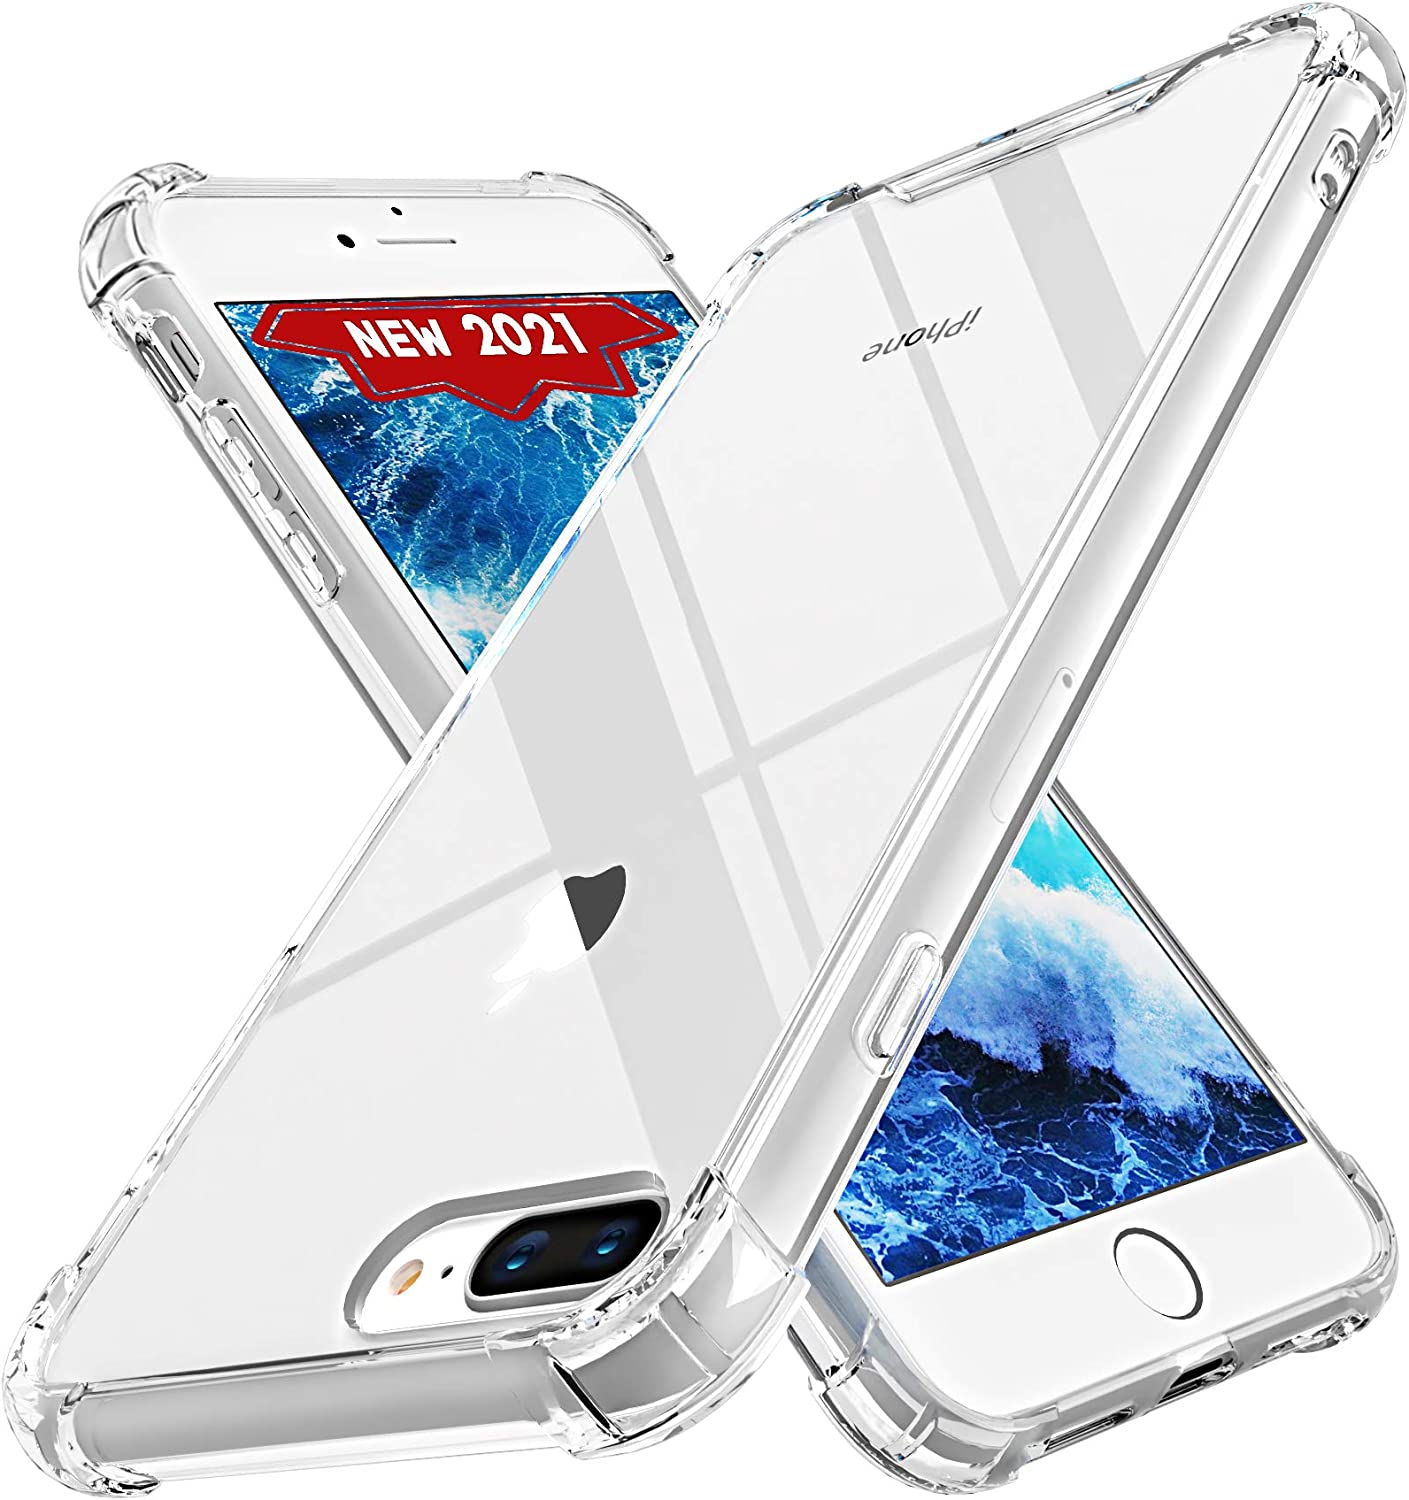 ORASE Ultra Clear Cases Designed for iPhone 8 Plus Case & for iPhone 7 Plus Case [Slim Fit] [Shockproof] [Not Yellowing] Protective Clear Case with Soft Bumper + Hard Back Cover (Crystal Clear)